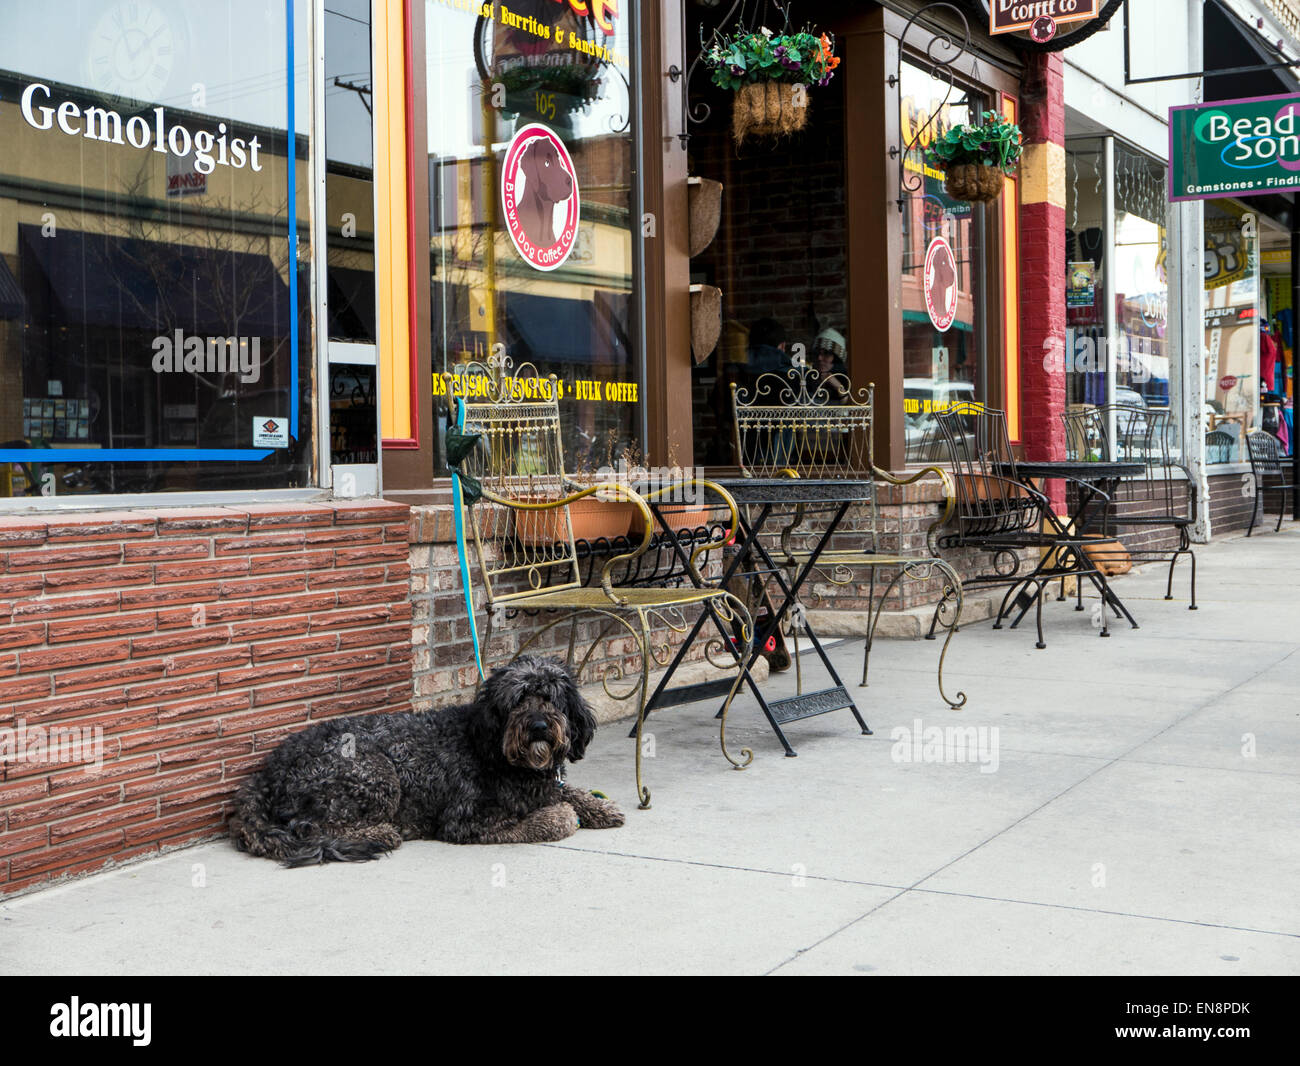 Dog waiting for owner outside coffee shop, downtown historic Salida, Colorado, USA - Stock Image